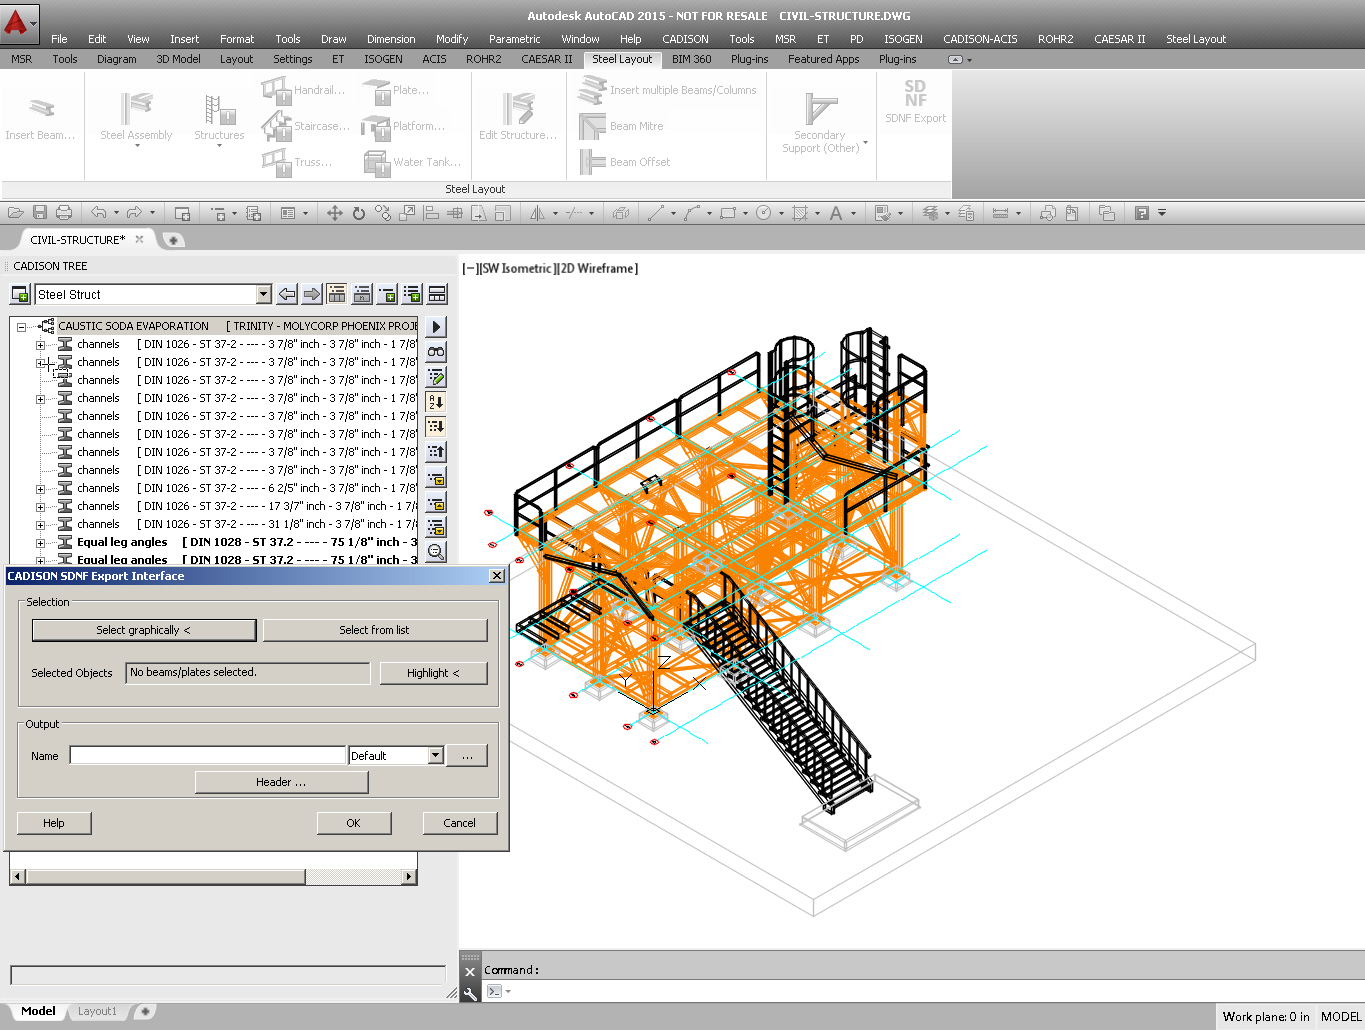 Plant Engineering Software Piping Analysis Layout Calculation Sdnf Interface For Further Detailing